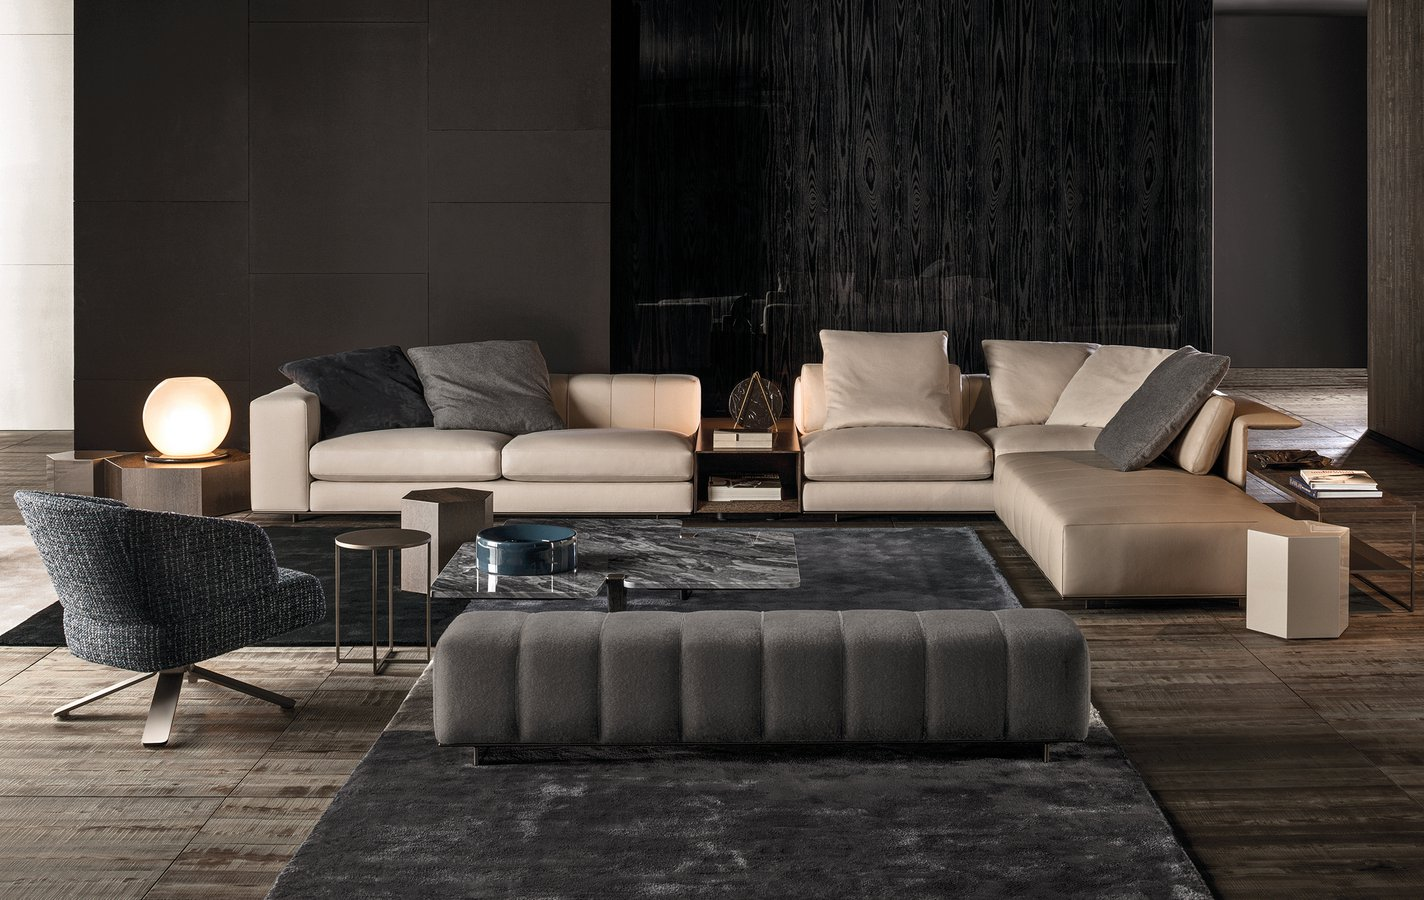 Freeman Stand Alone Bench By Minotti Ecc